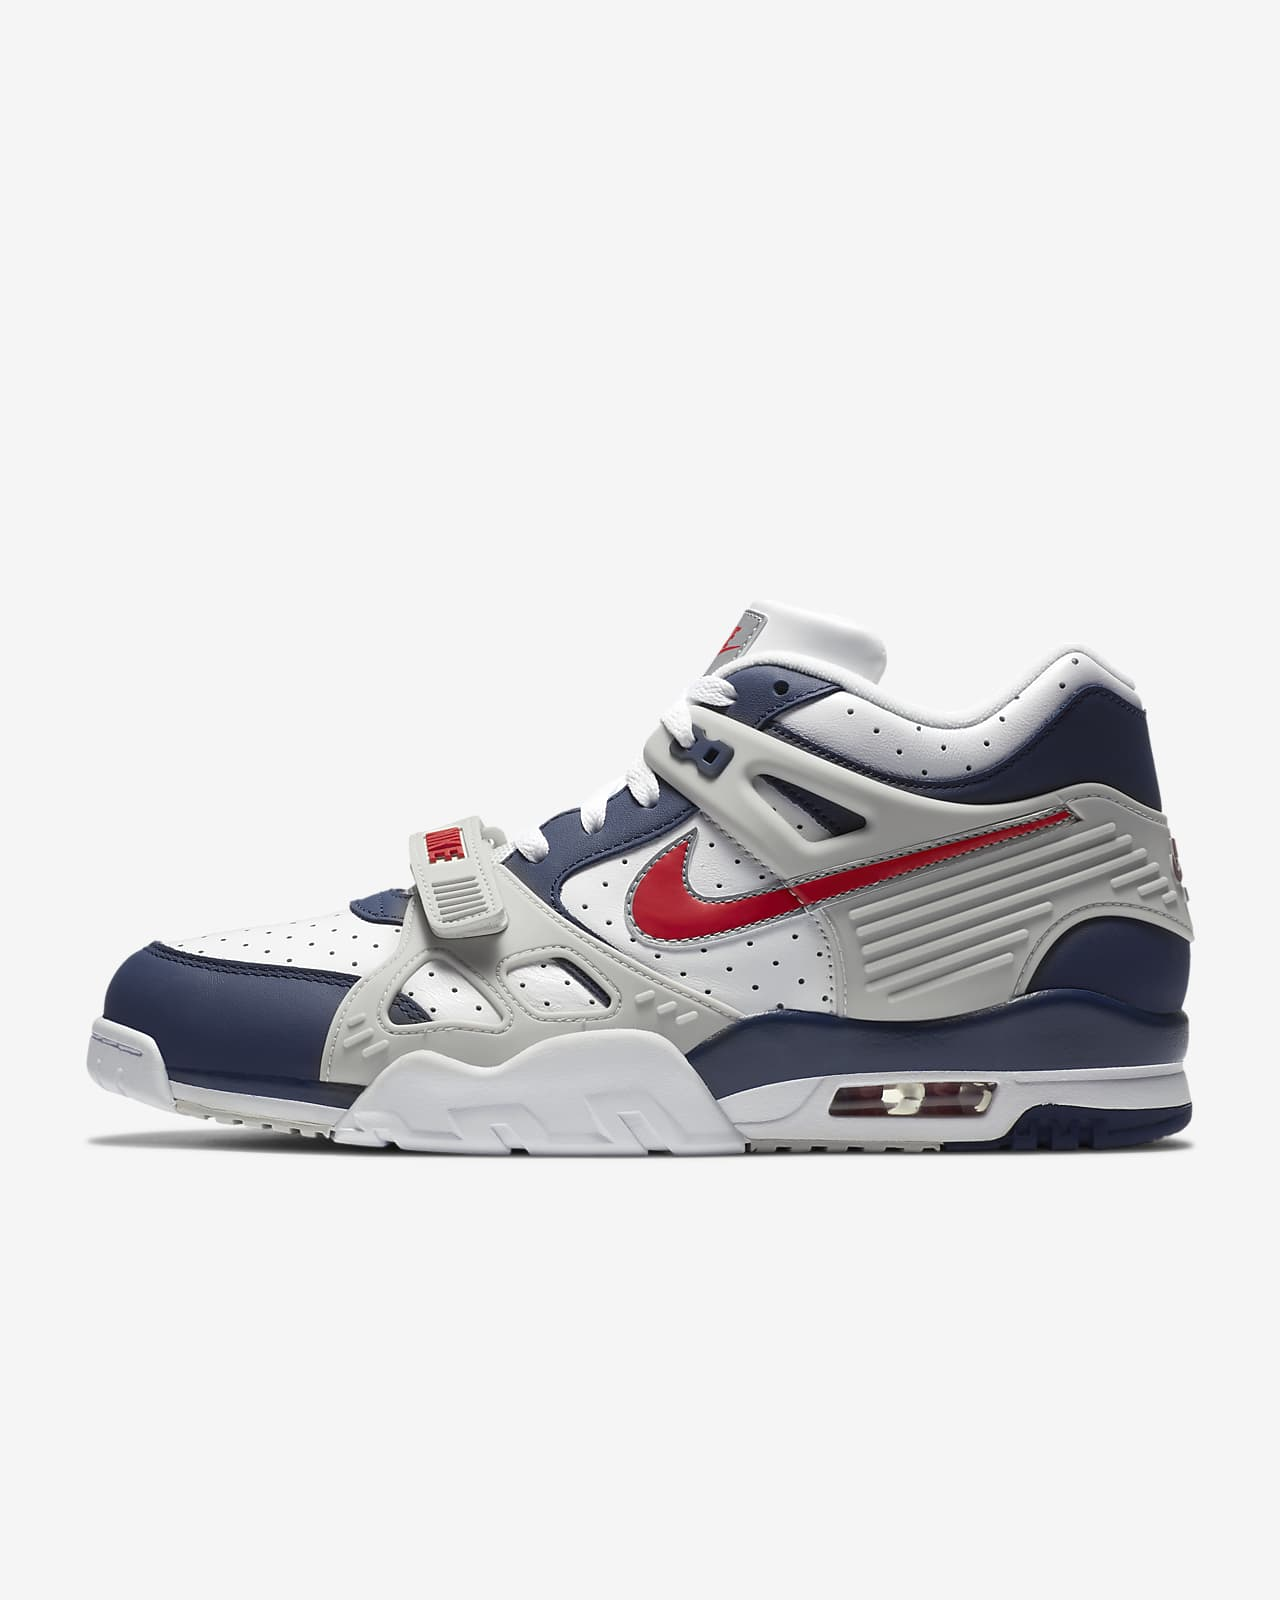 Nike Air Trainer 3 Shoe